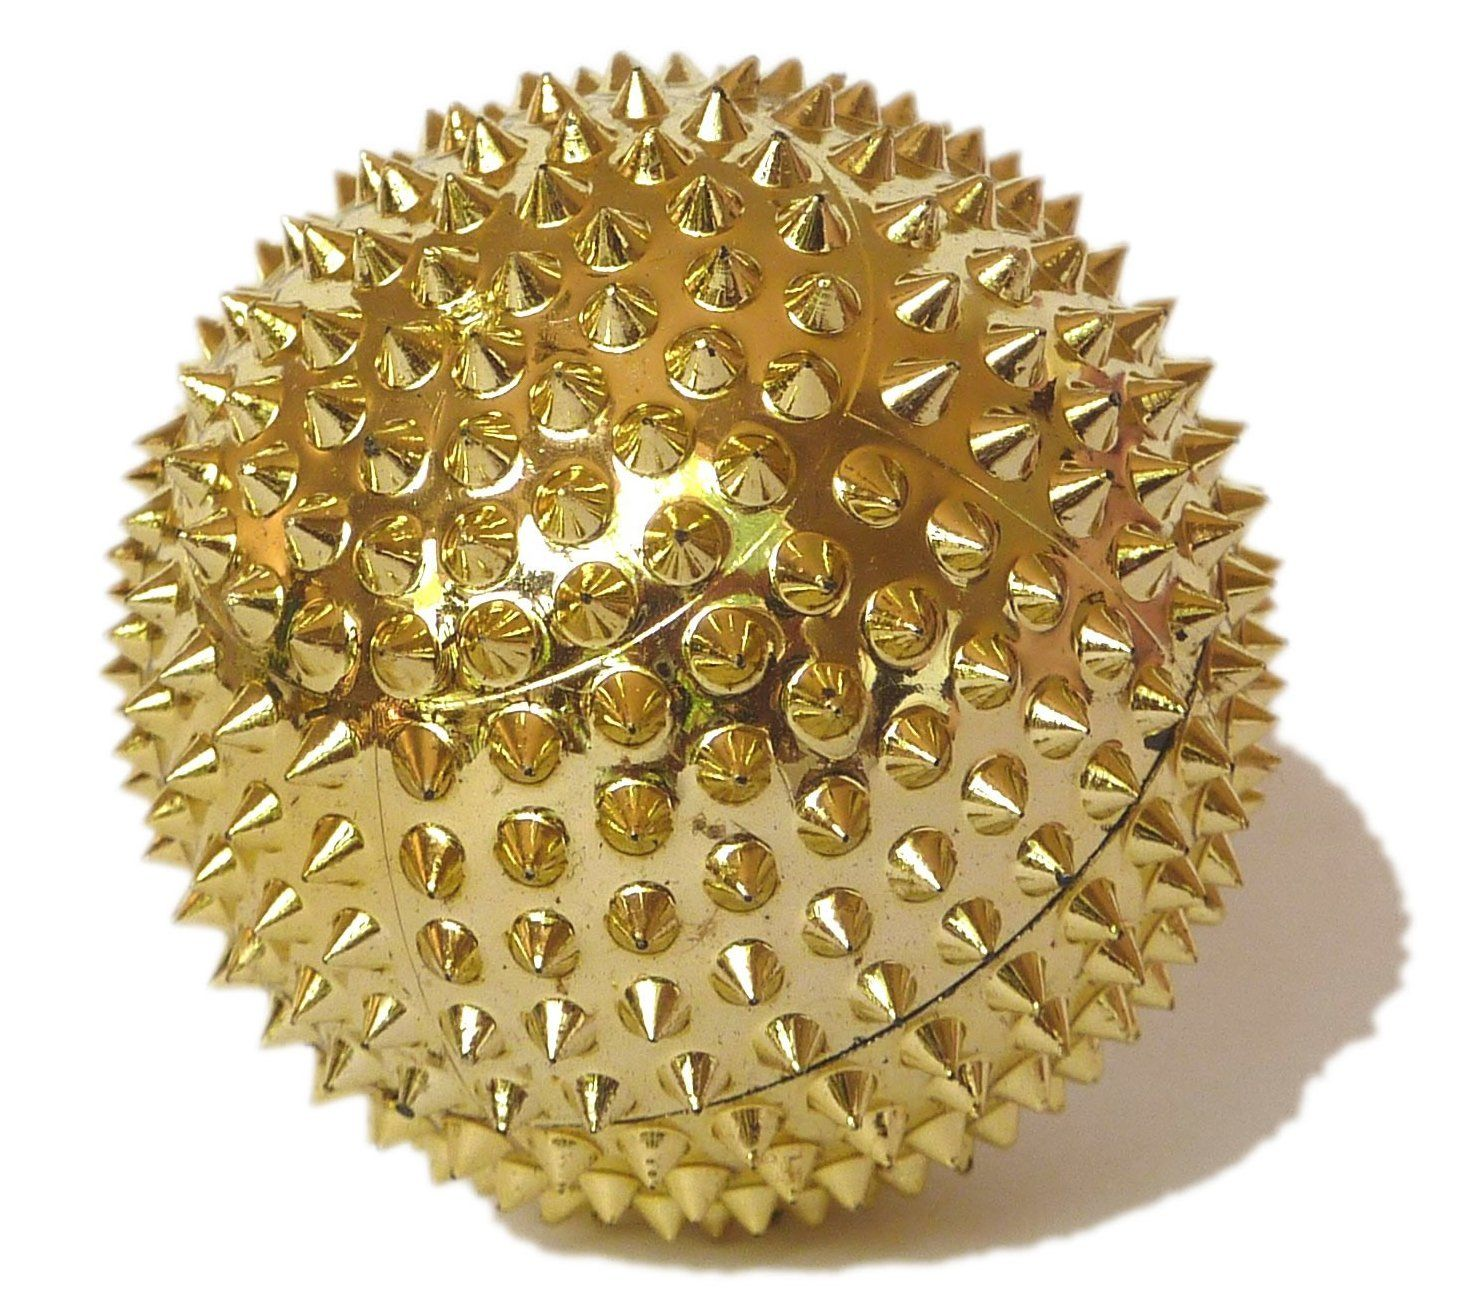 Acu Ball Massaging Needle Balls With Images Acupuncture